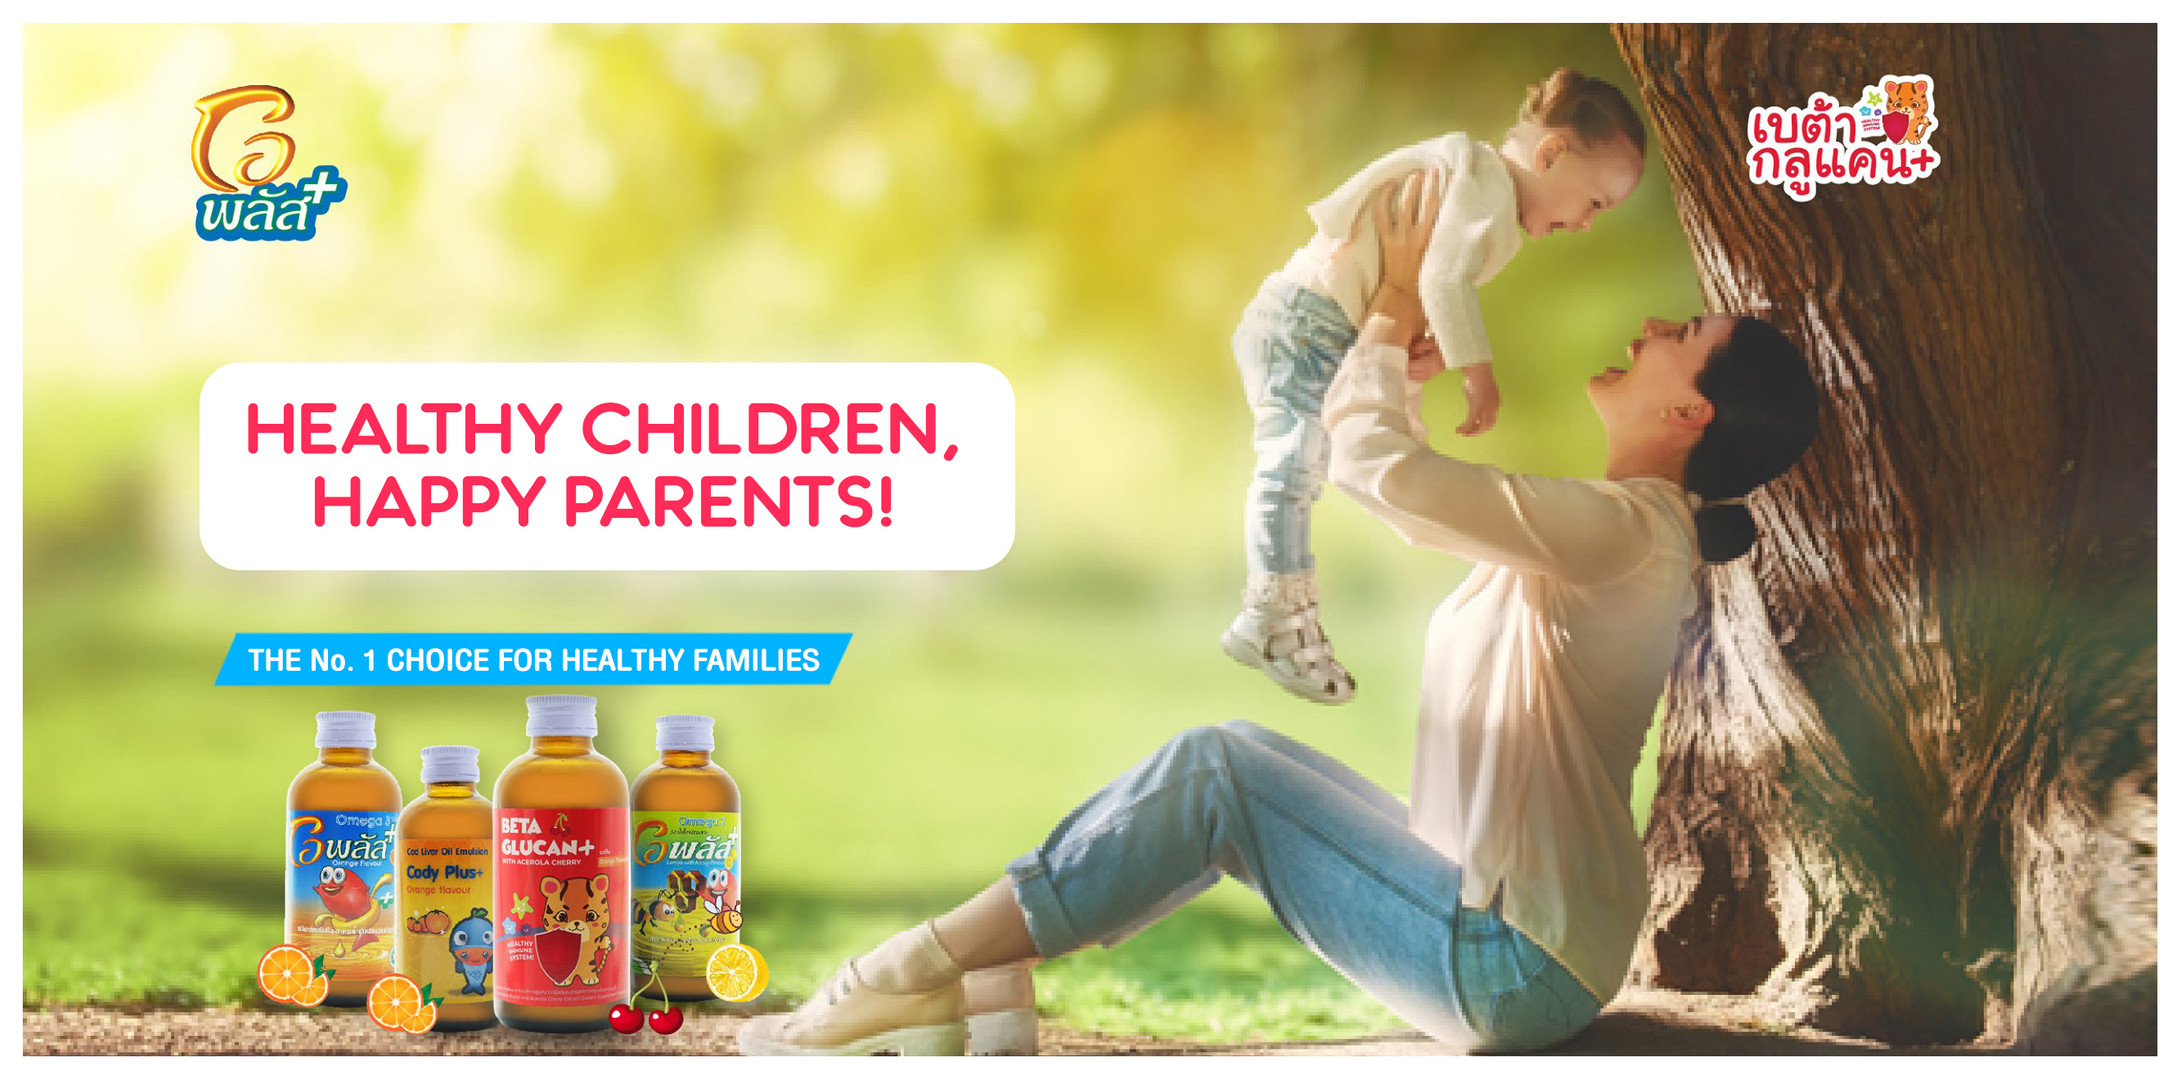 OPlus+ The No.1 Choice for Healthy Families